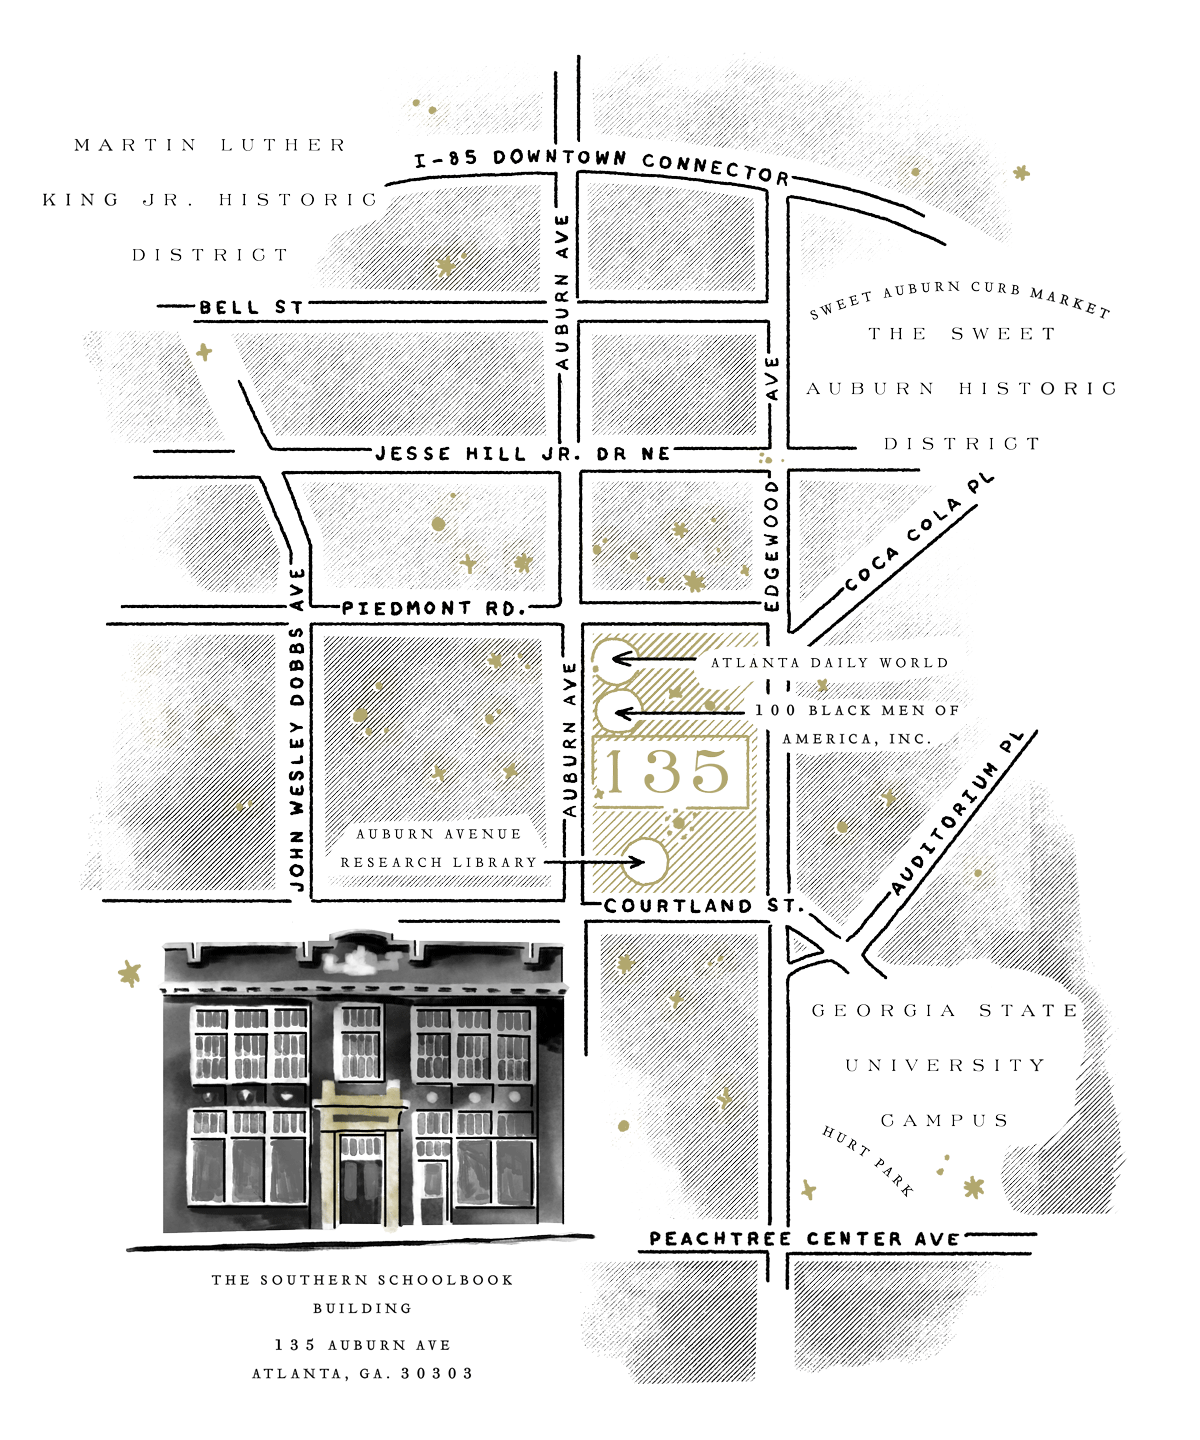 map-02.png